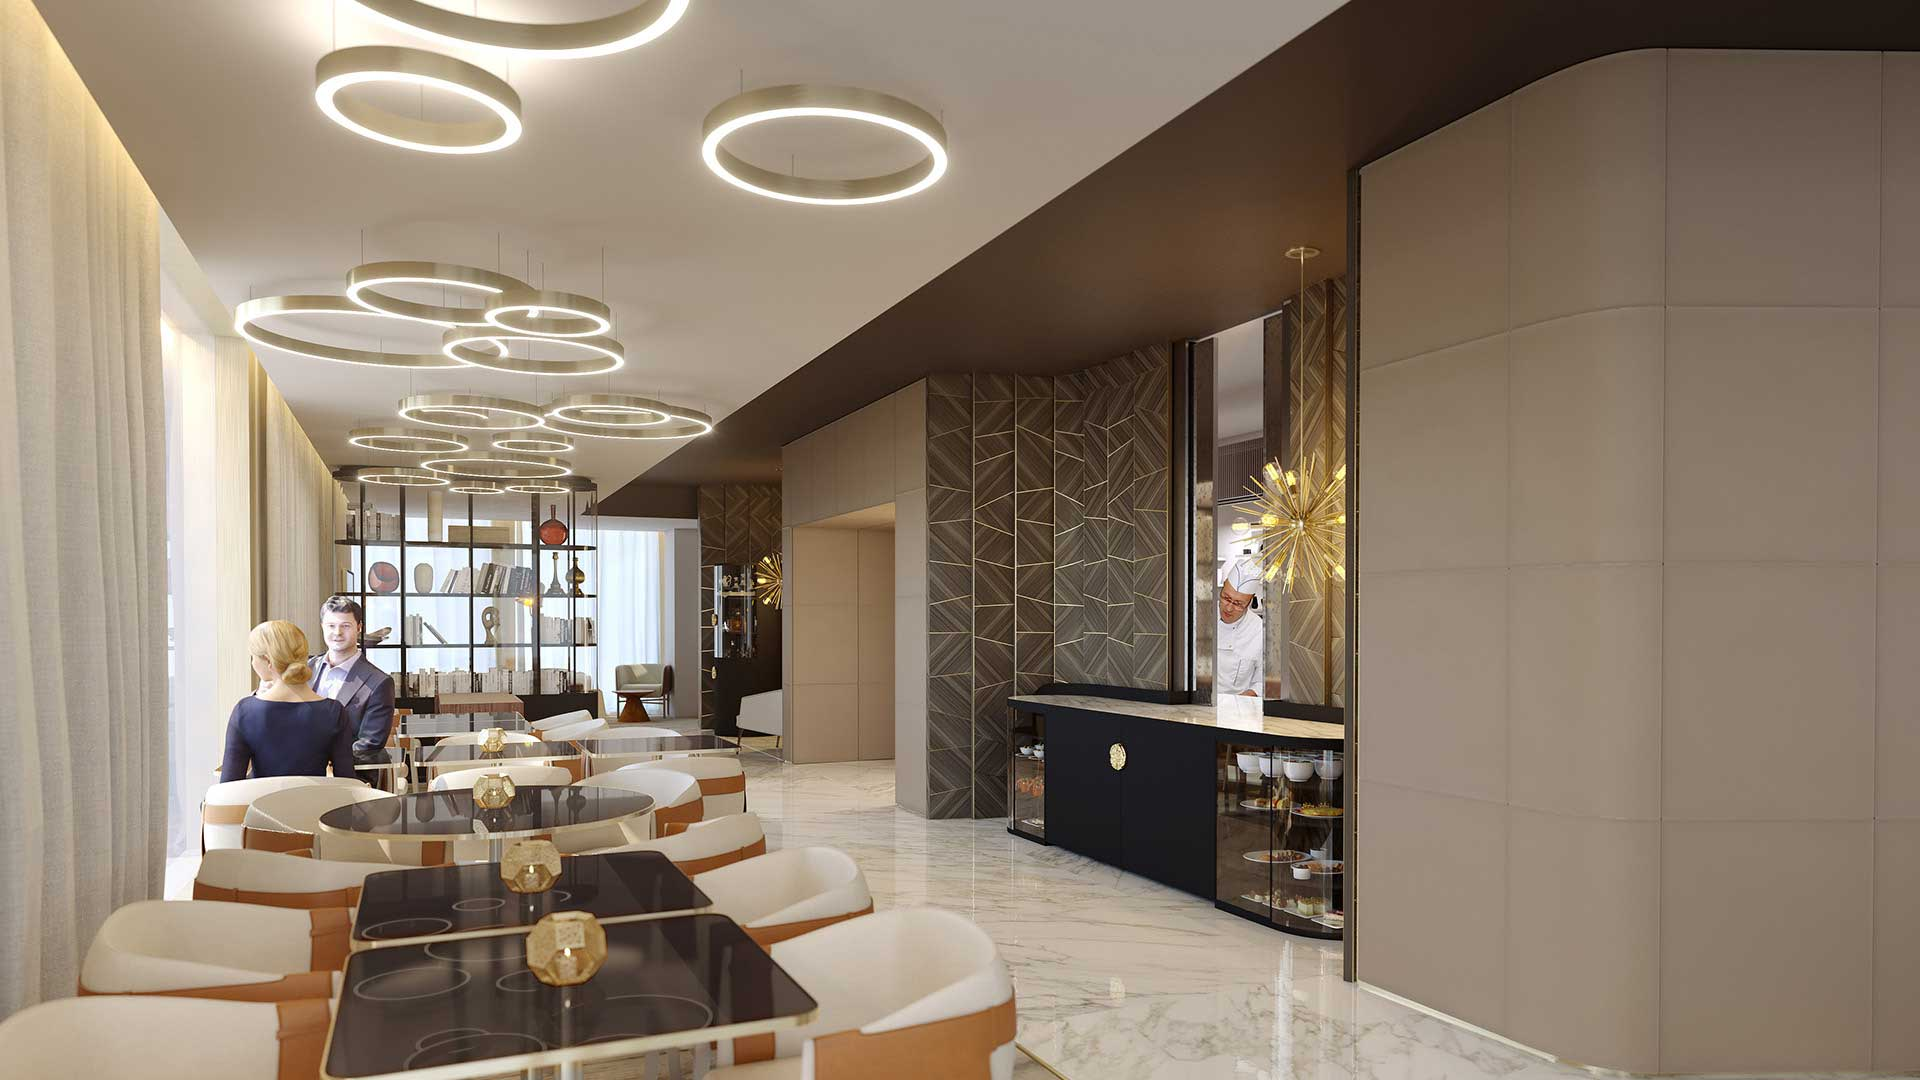 Concours 3D Perspective Restaurant De Luxe Image Synthse